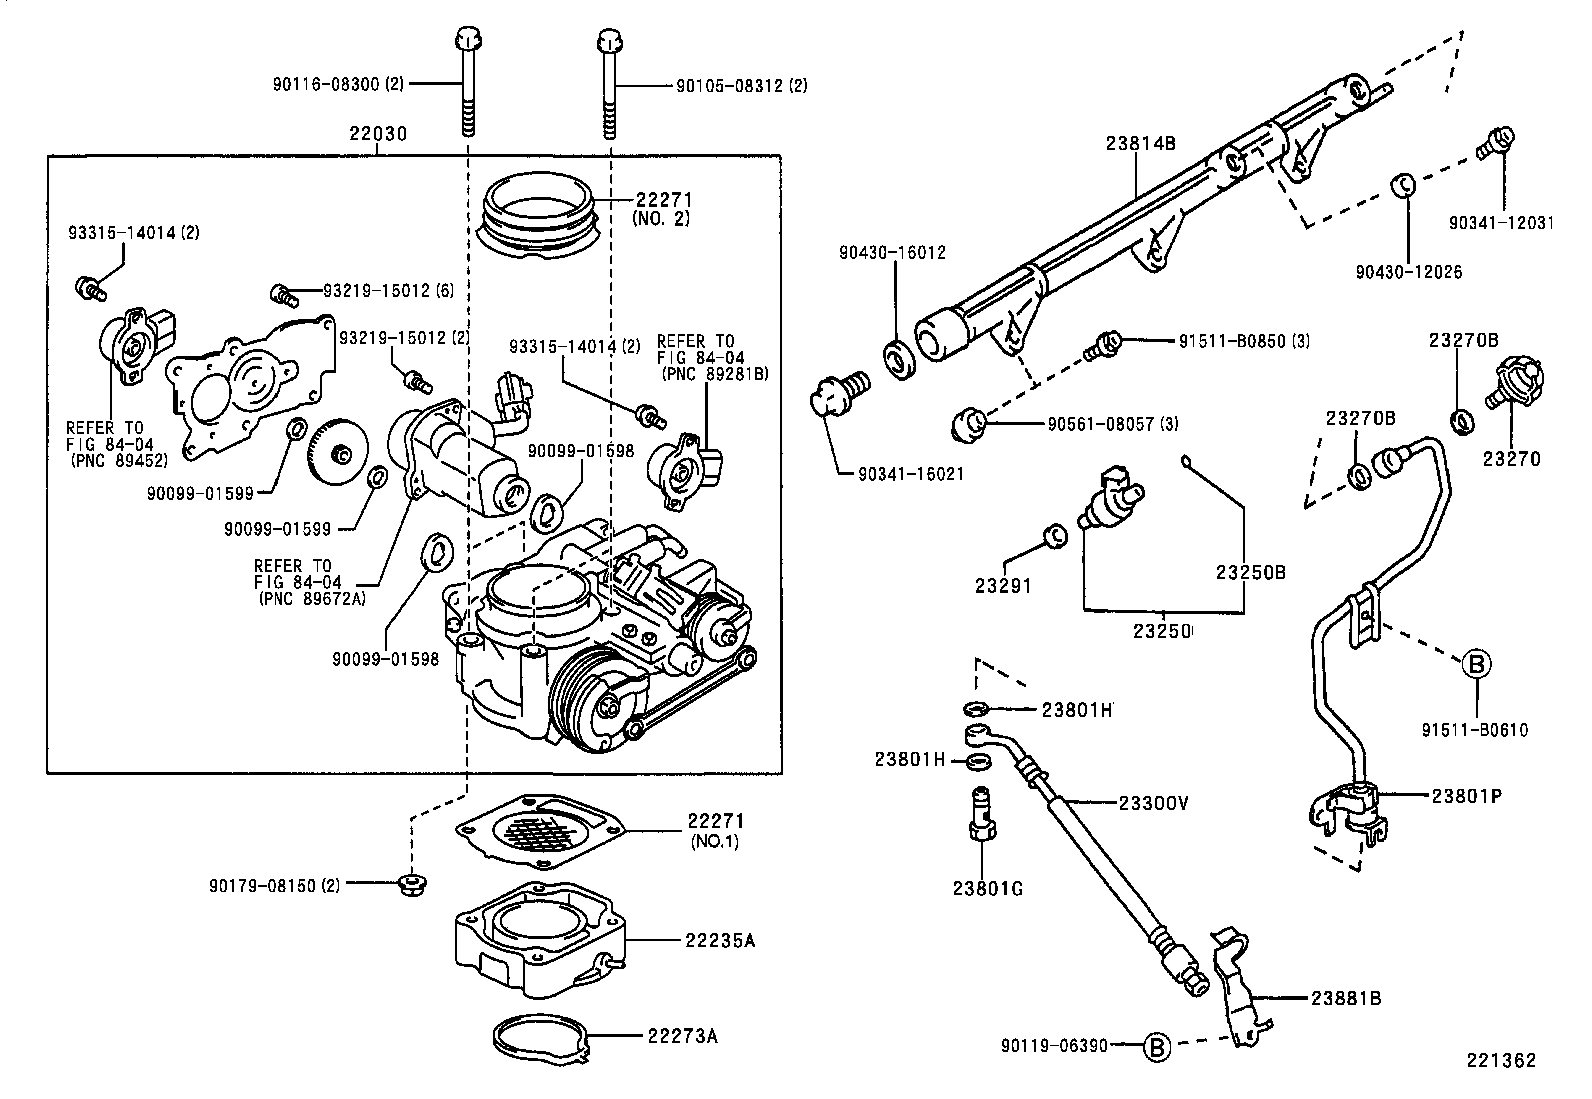 FUEL INJECTION SYSTEM[ ILLUST NO. 1 OF 2(9901- )1GFE